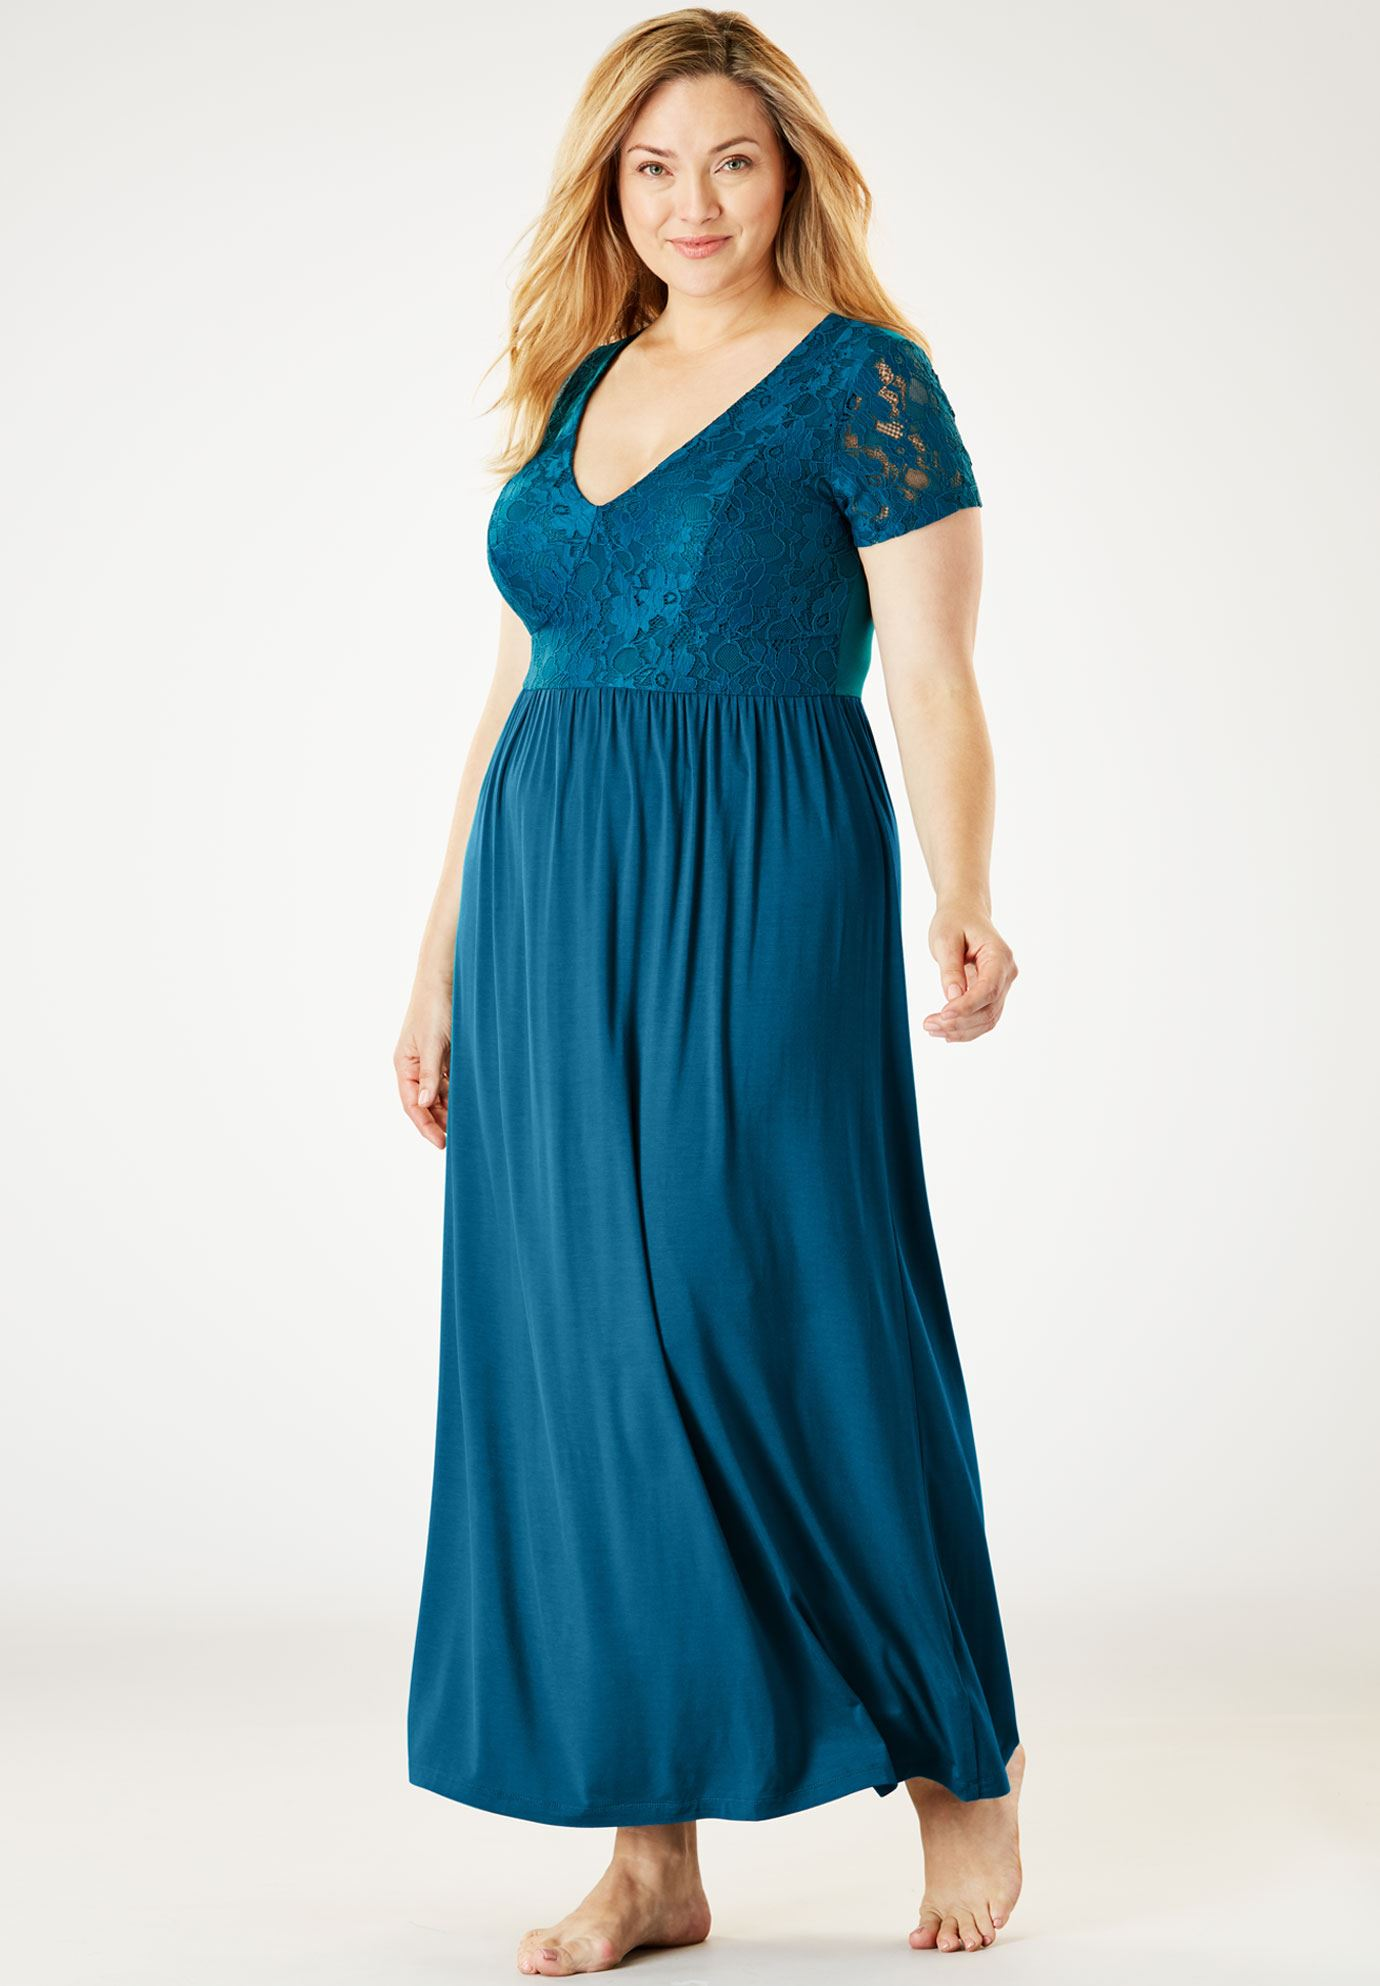 Lace Bodice Sleep Gown by Amoureuse®   Plus Size Nighties   Jessica ...